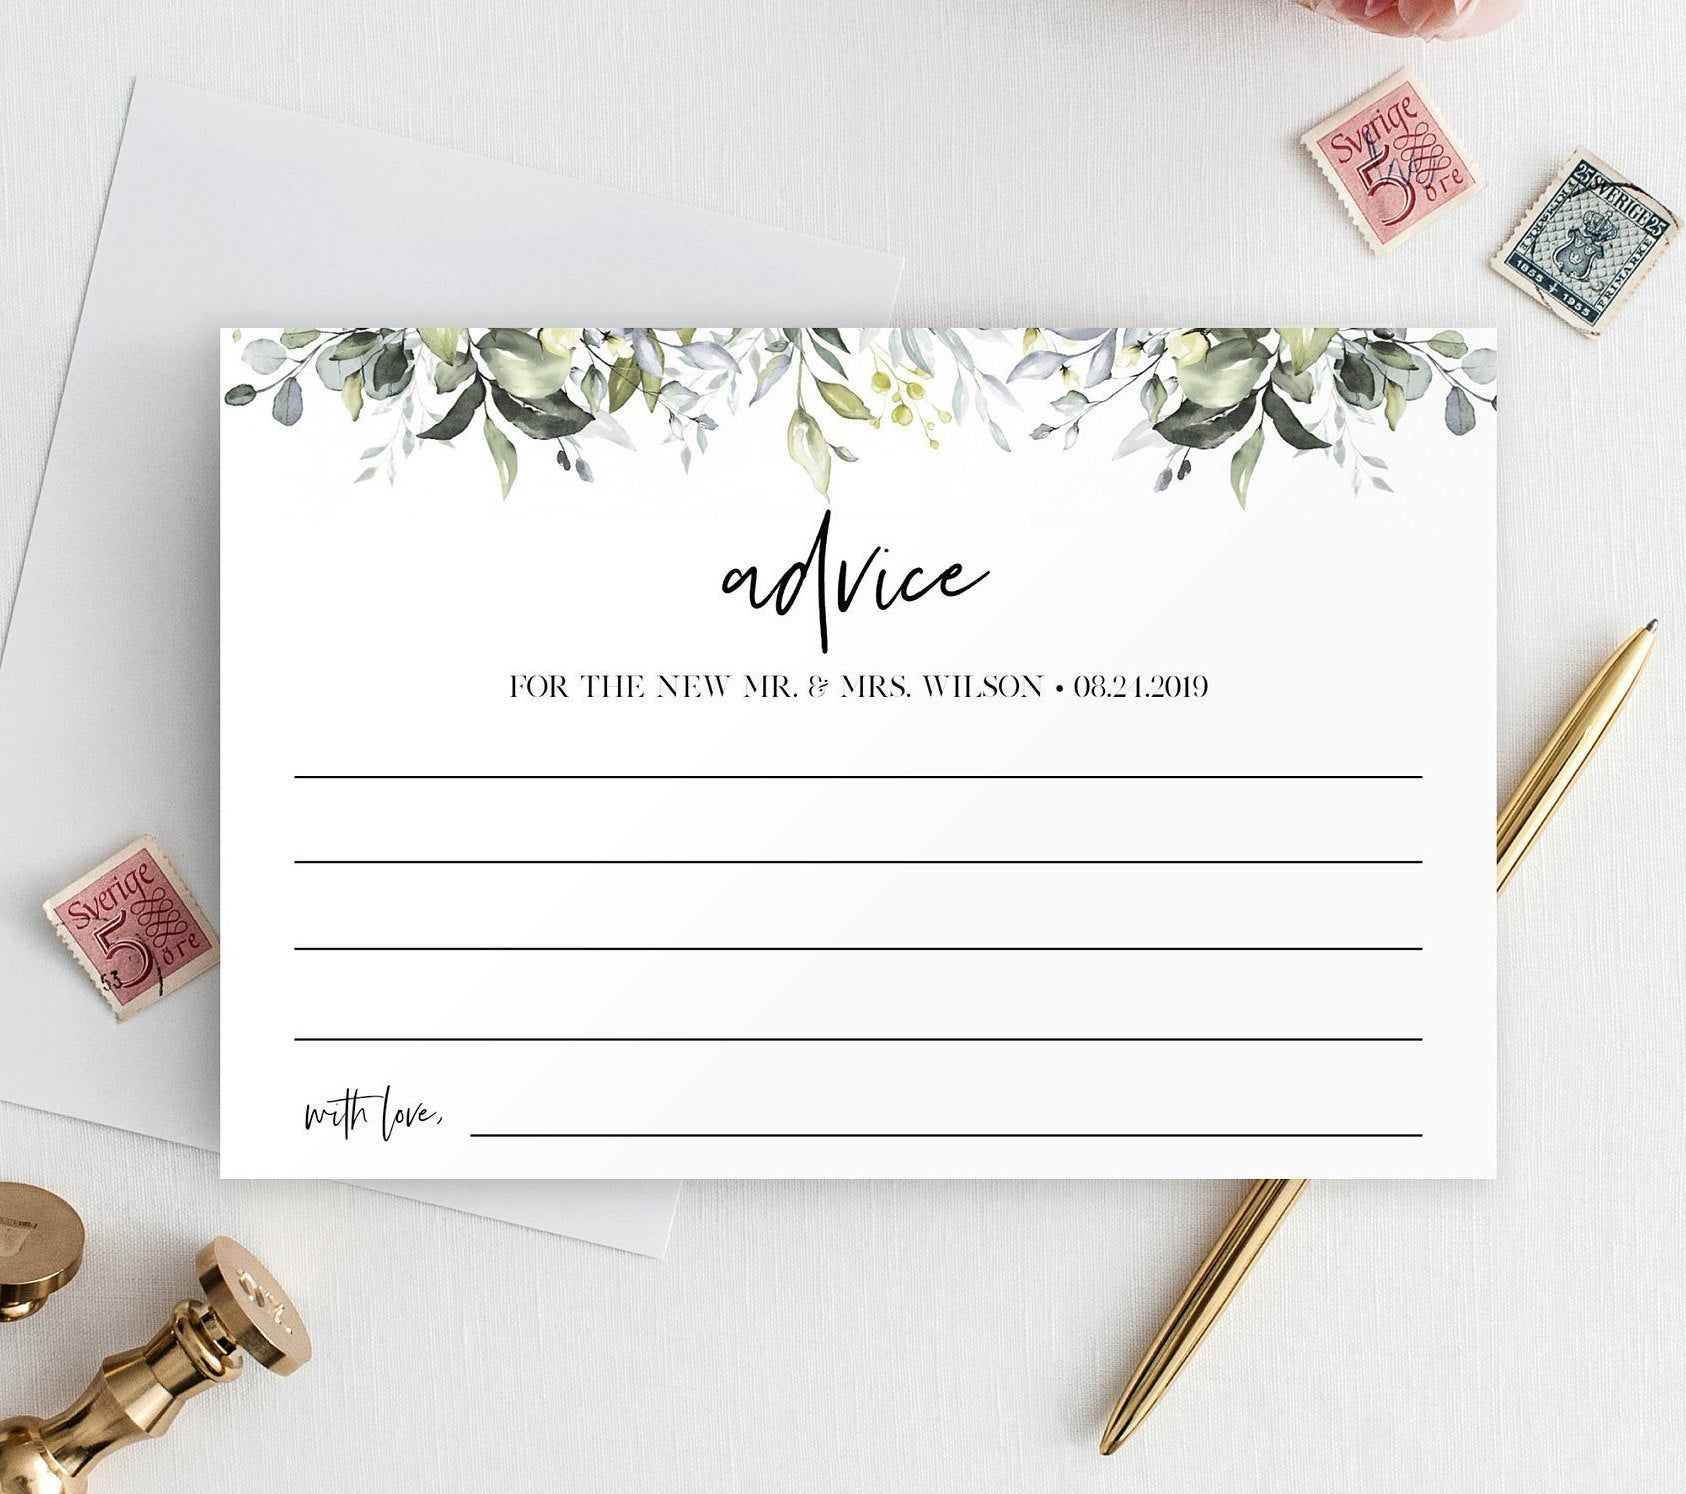 Wedding Advice Card Template Well Wishes Printable Editable Etsy Wedding Advice Cards Marriage Advice Cards Advice Cards